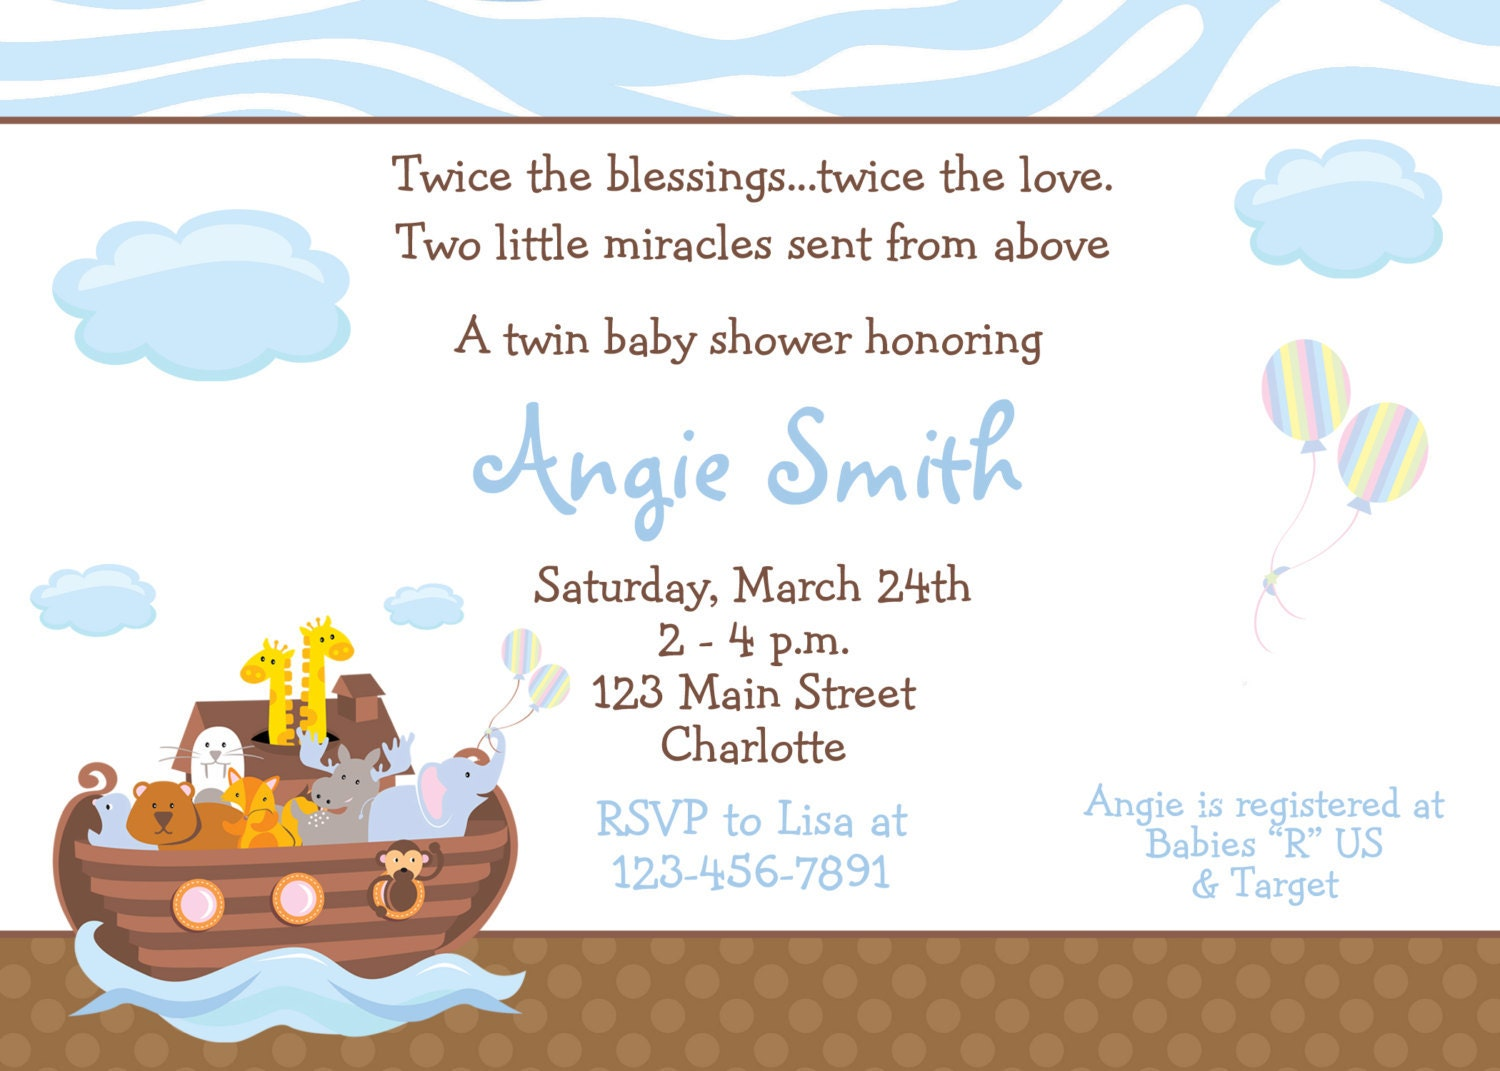 Noahs Ark Baby shower invitation twins baby shower – Free Baby Shower Invitation Cards